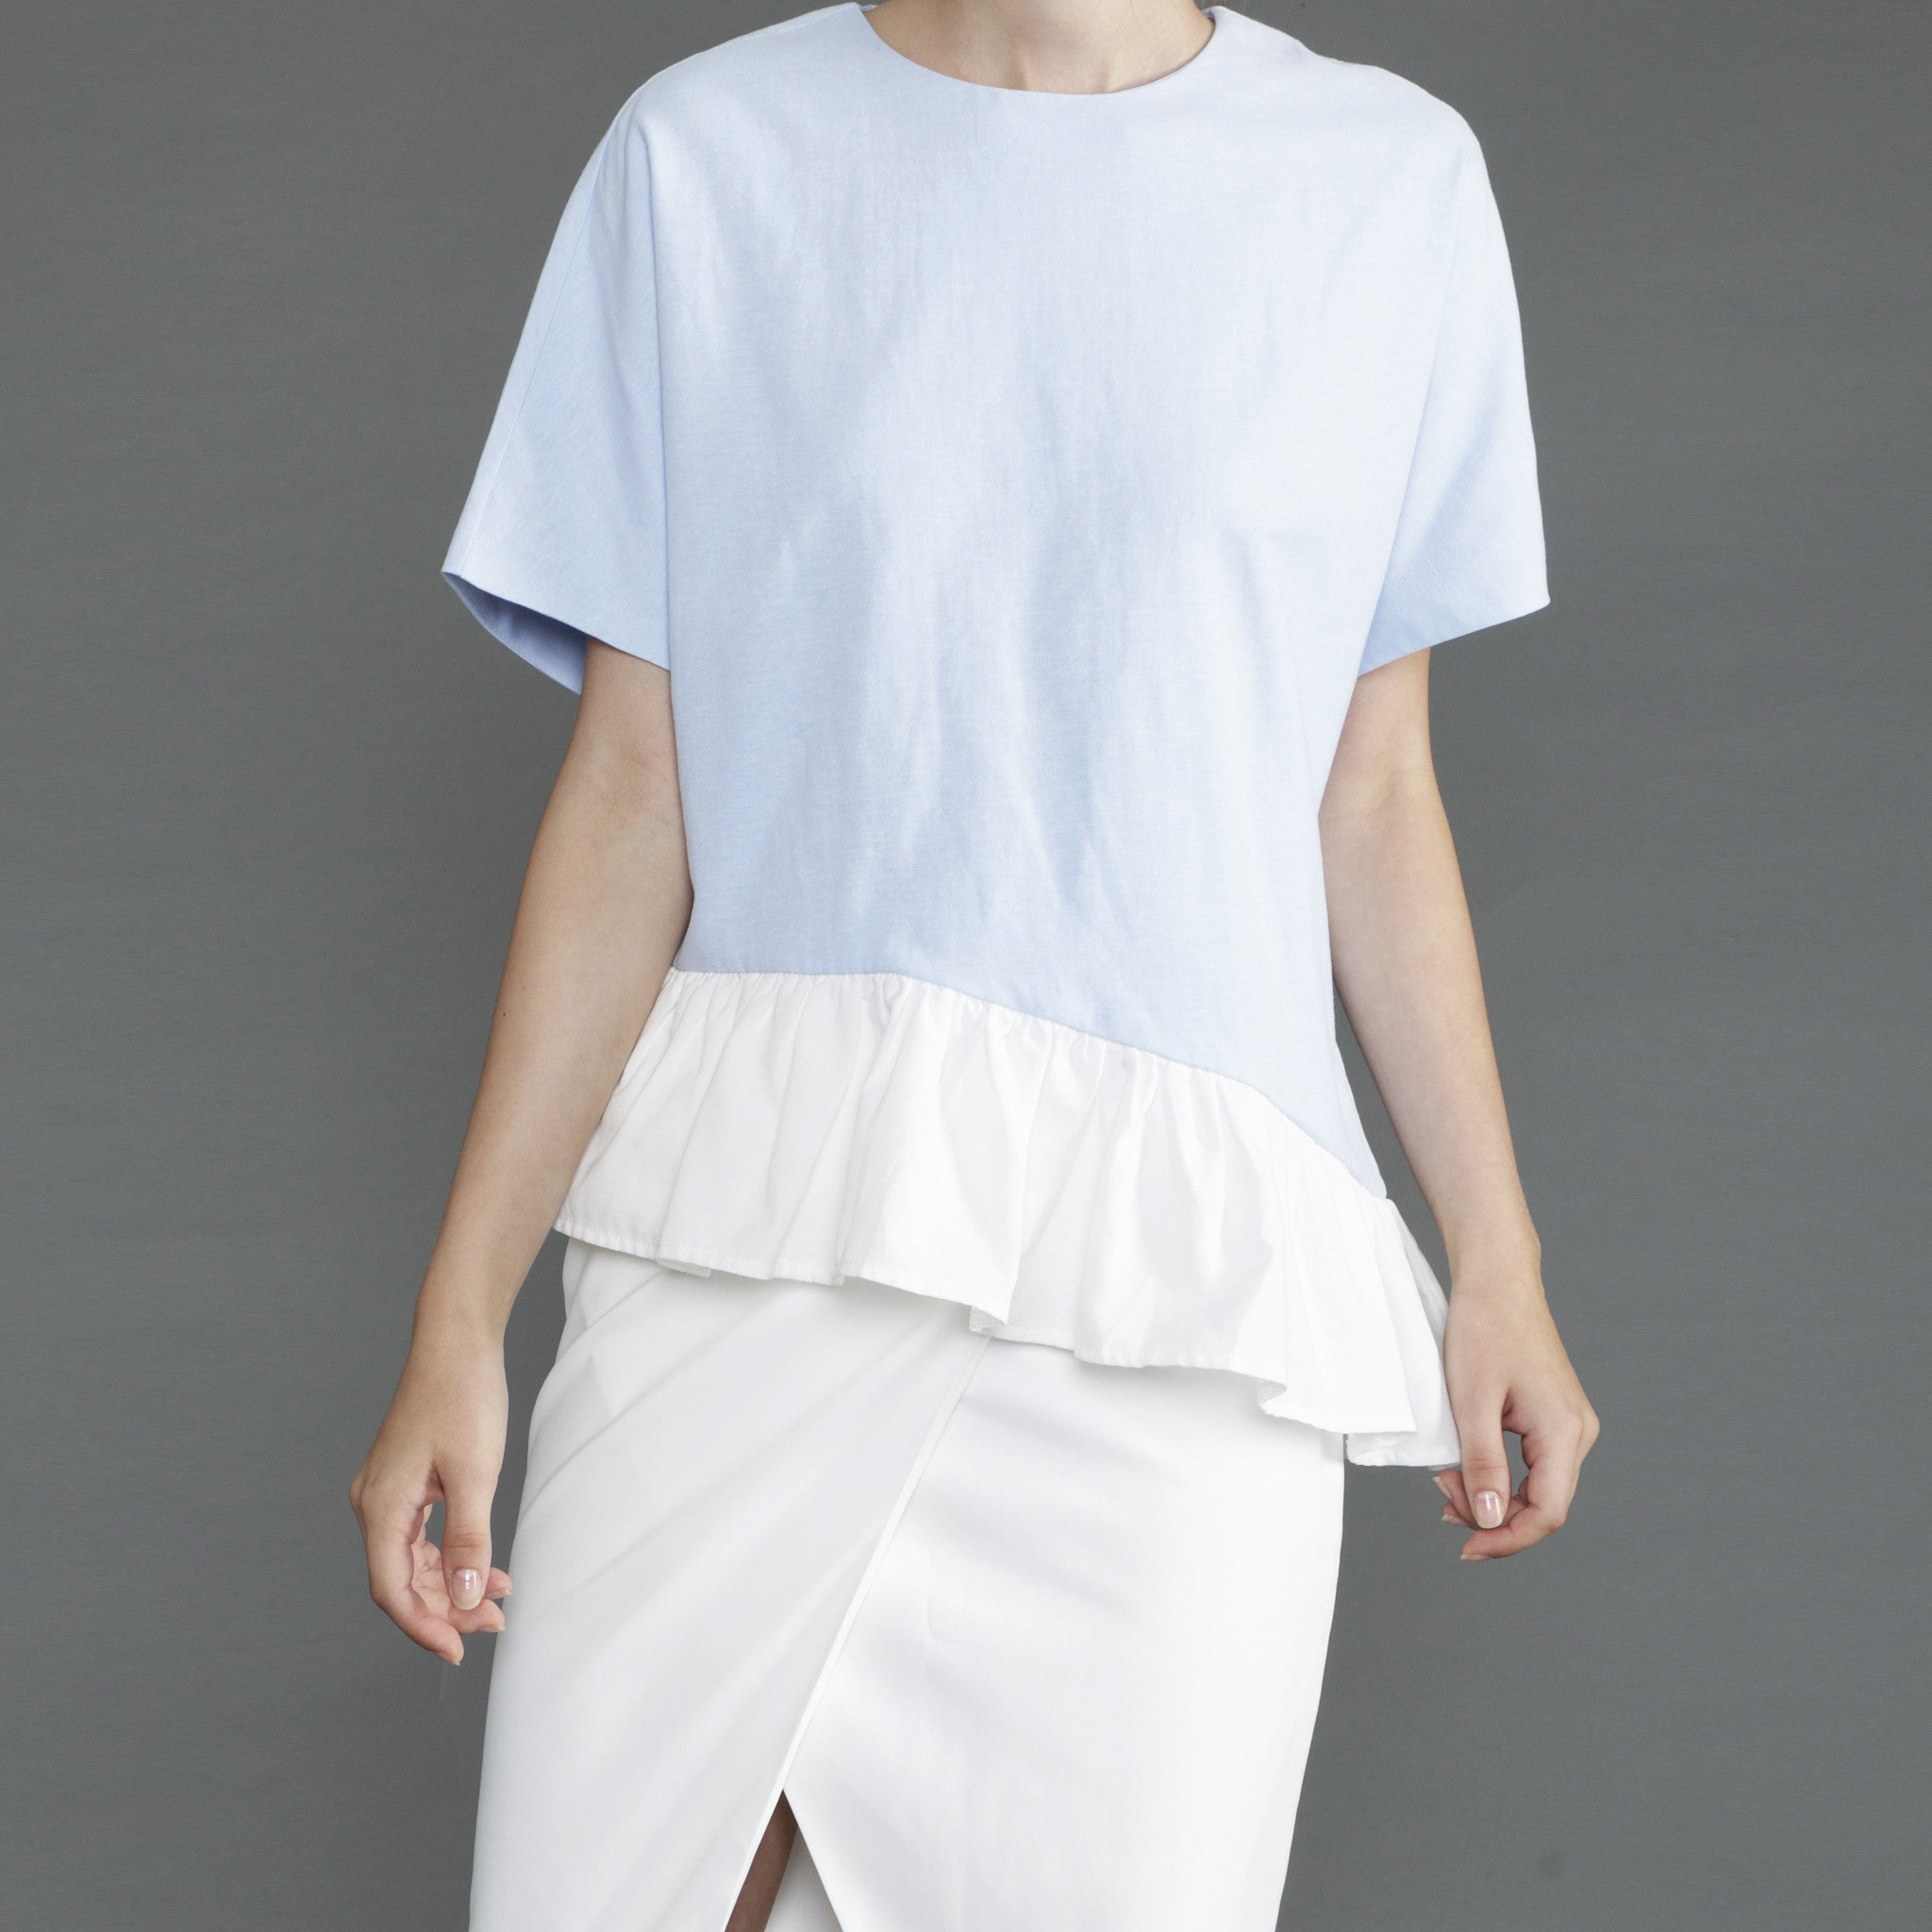 ASYMMETRICAL RUFFLED HEM TOP